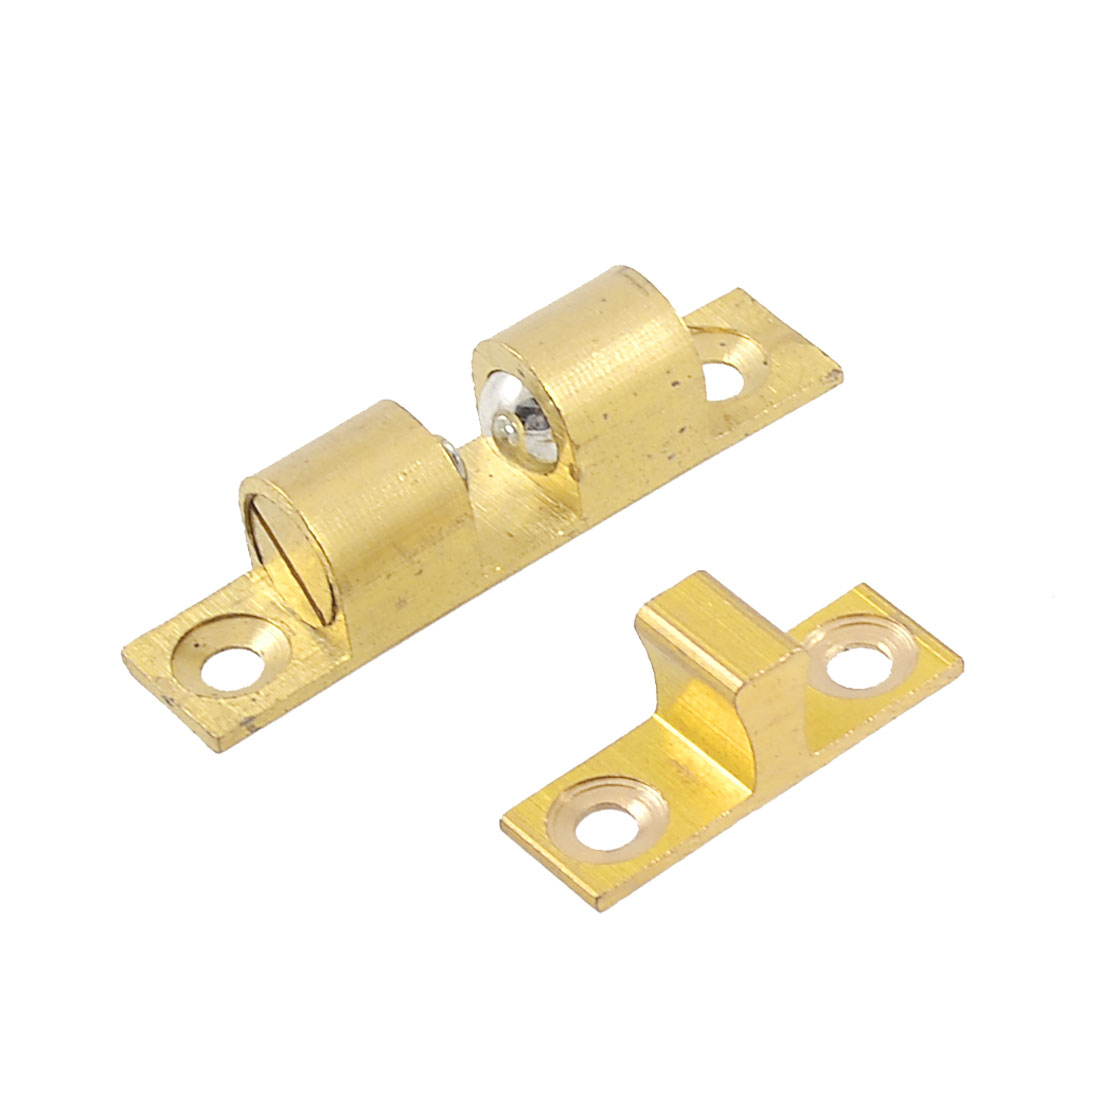 Home Door Latch Double Ball Catch 40mm Length Gold Tone